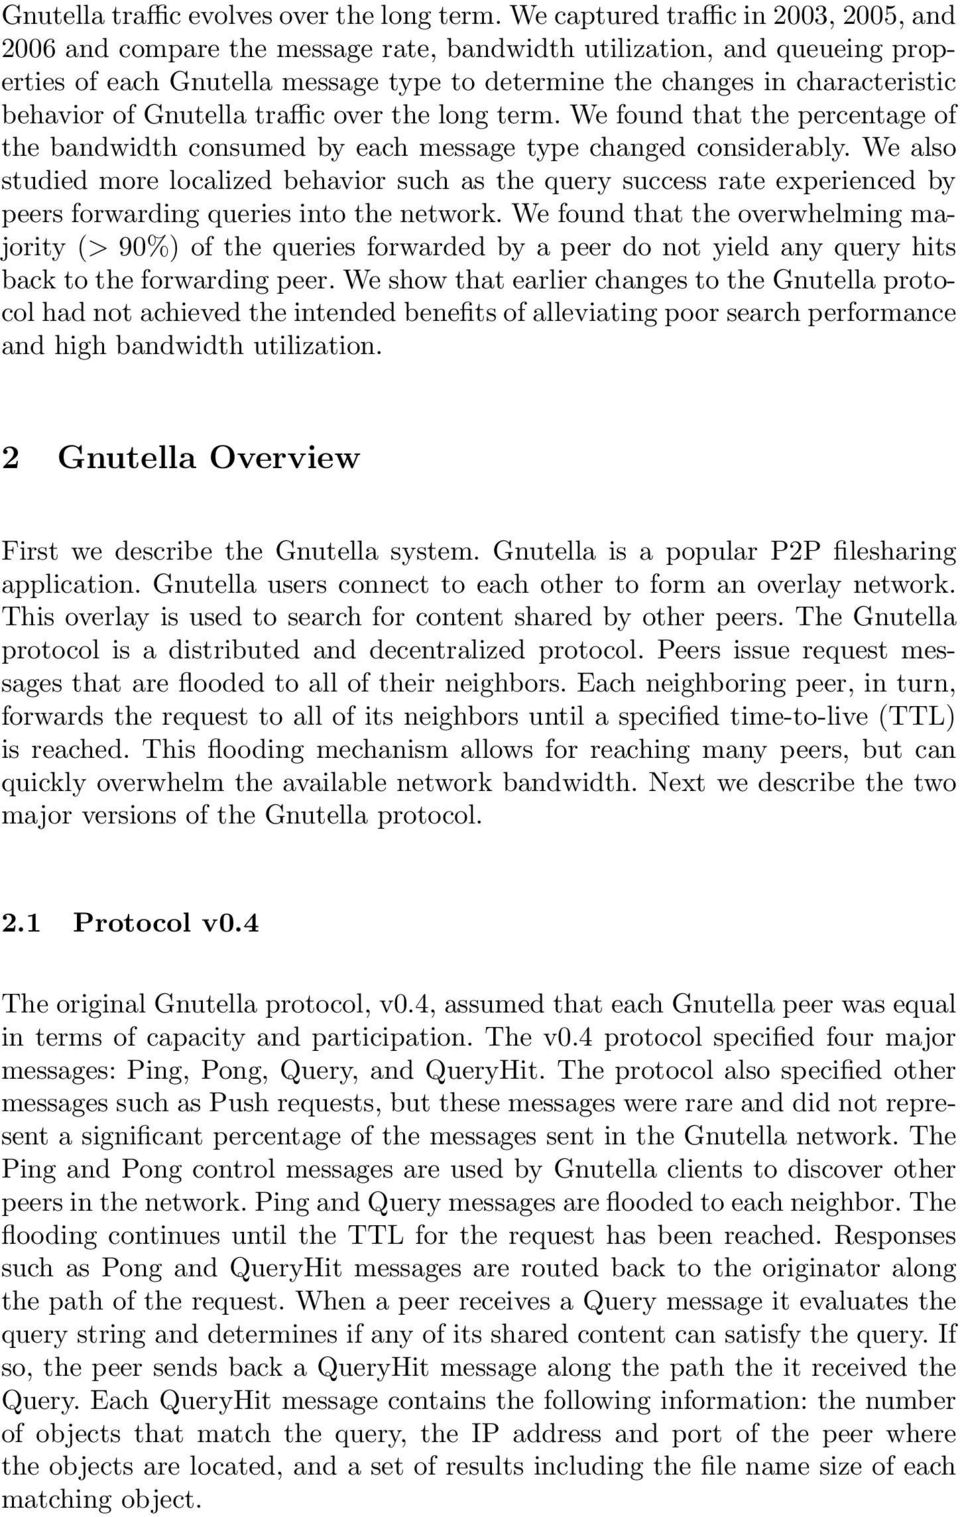 Gnutella traffic over the long term. We found that the percentage of the bandwidth consumed by each message type changed considerably.